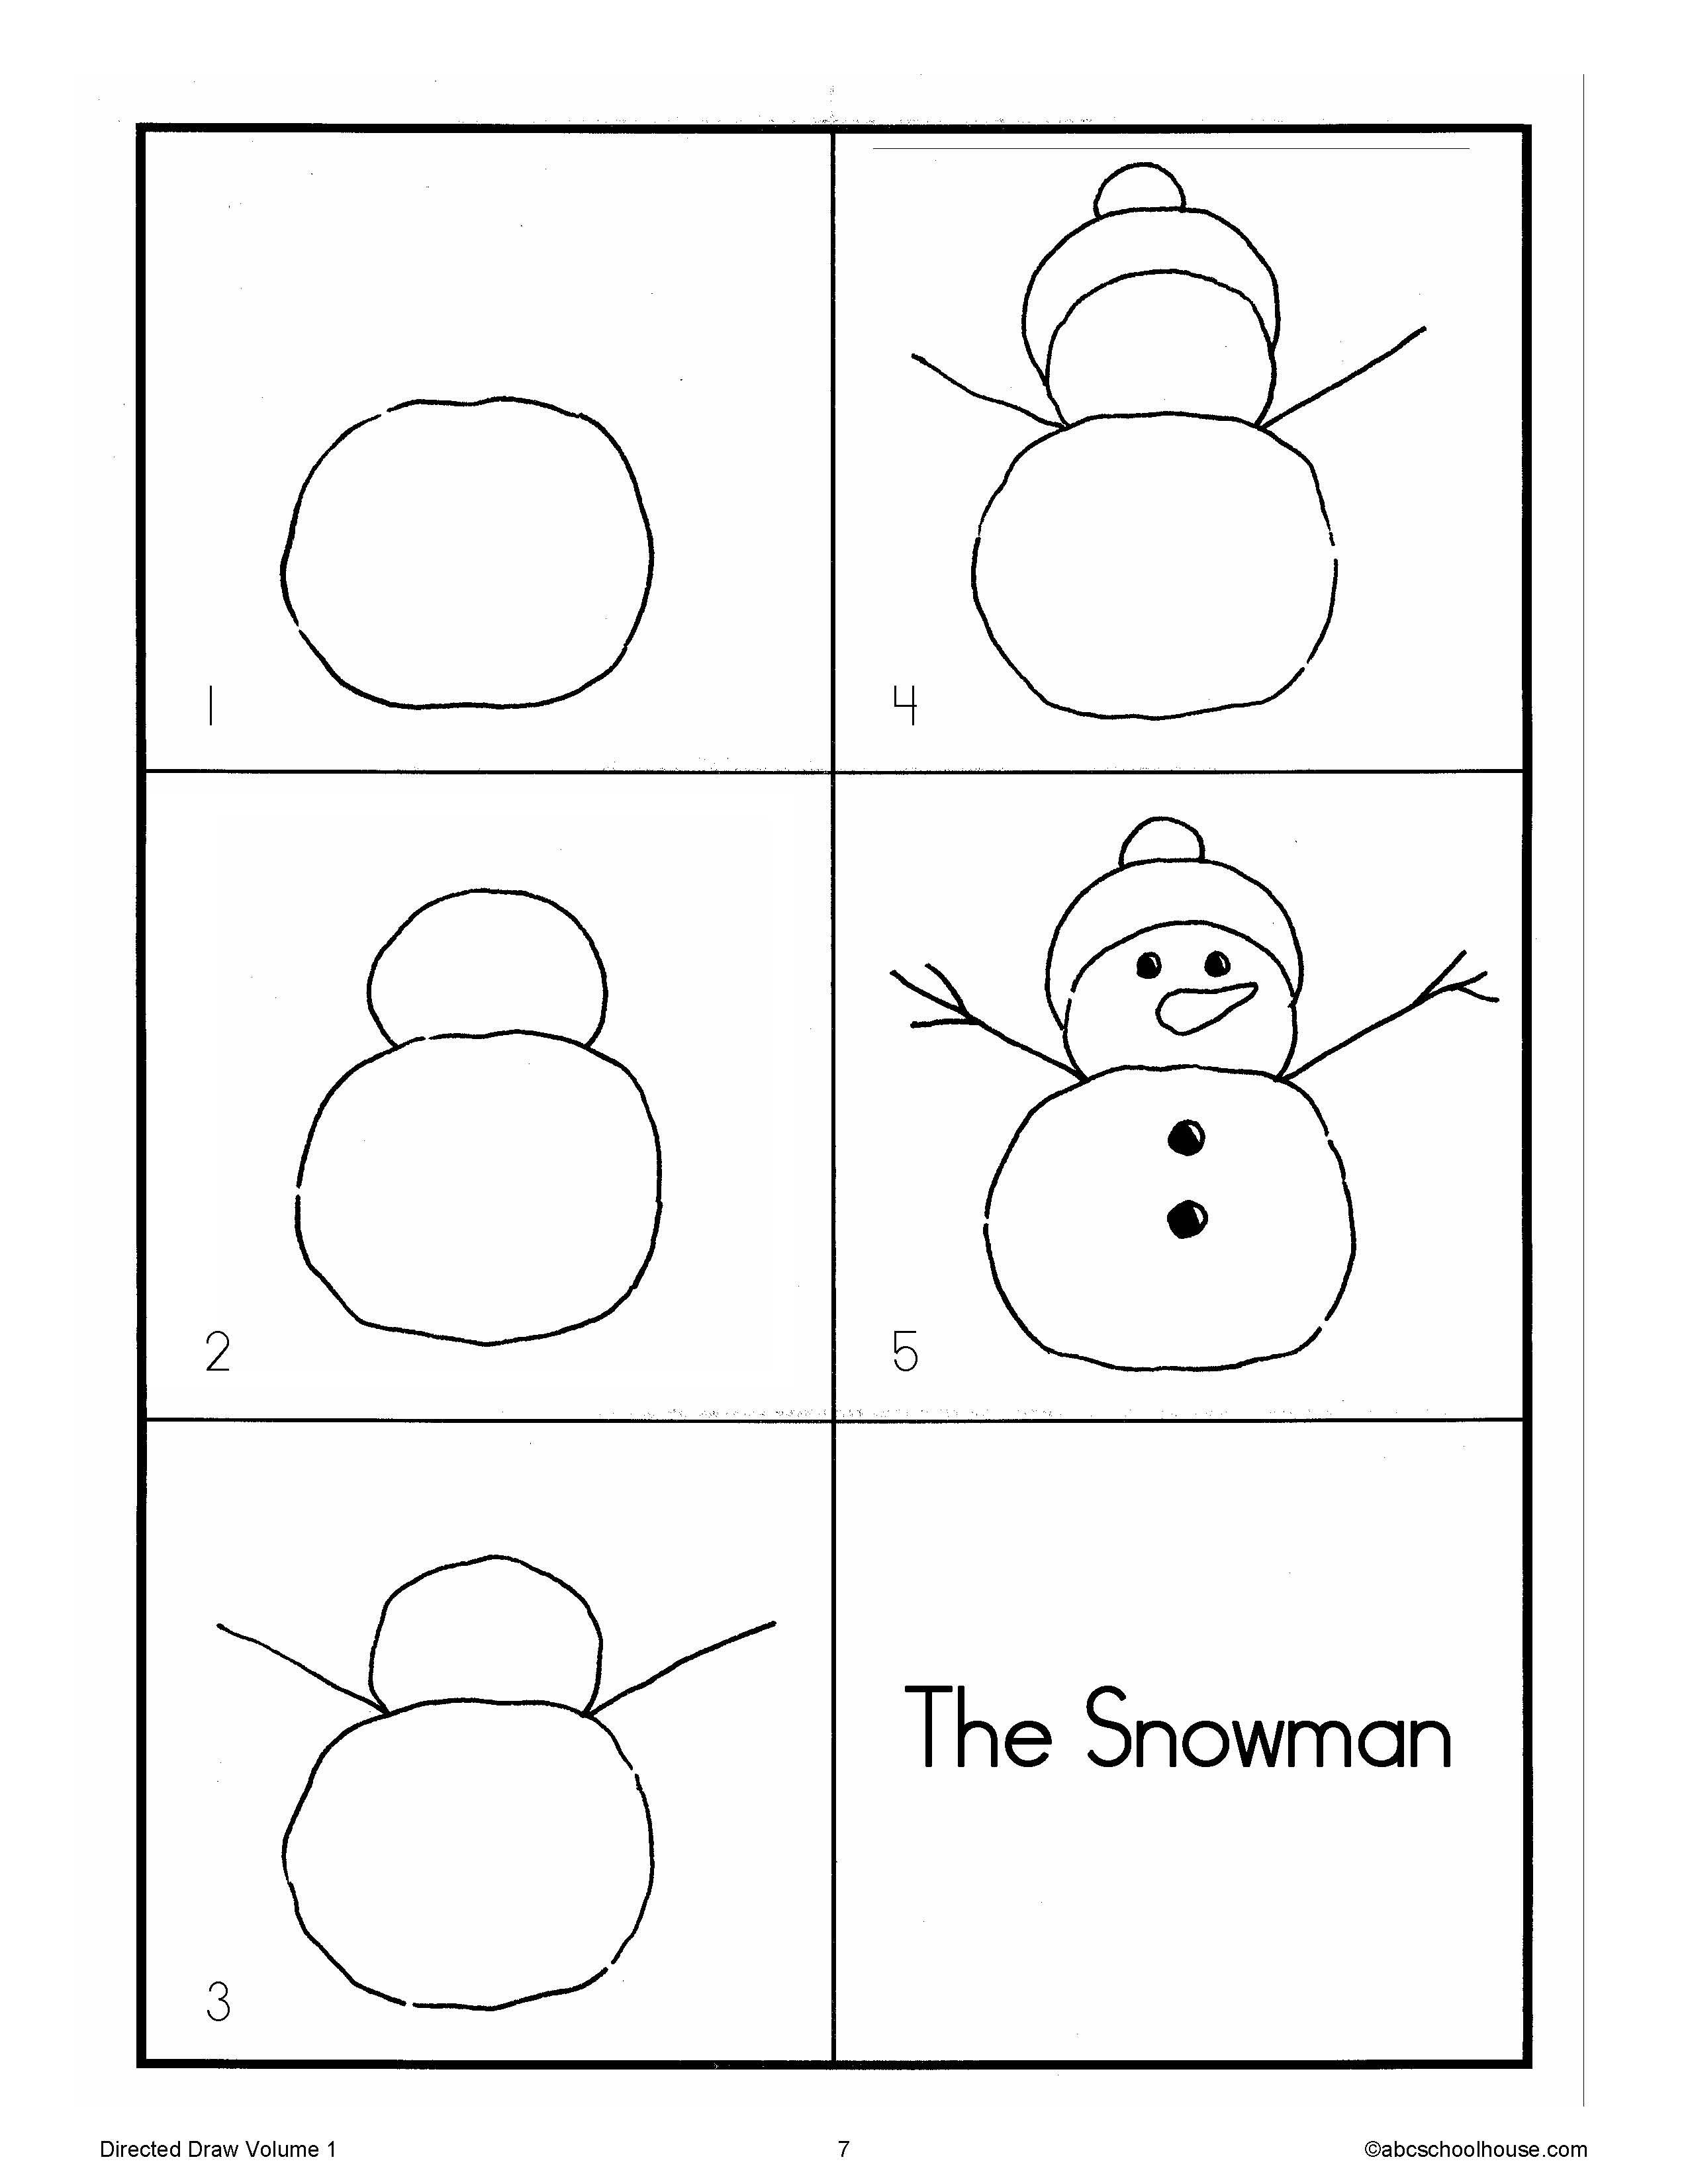 Directed Drawing Snowman Art Activities Pinterest Directed